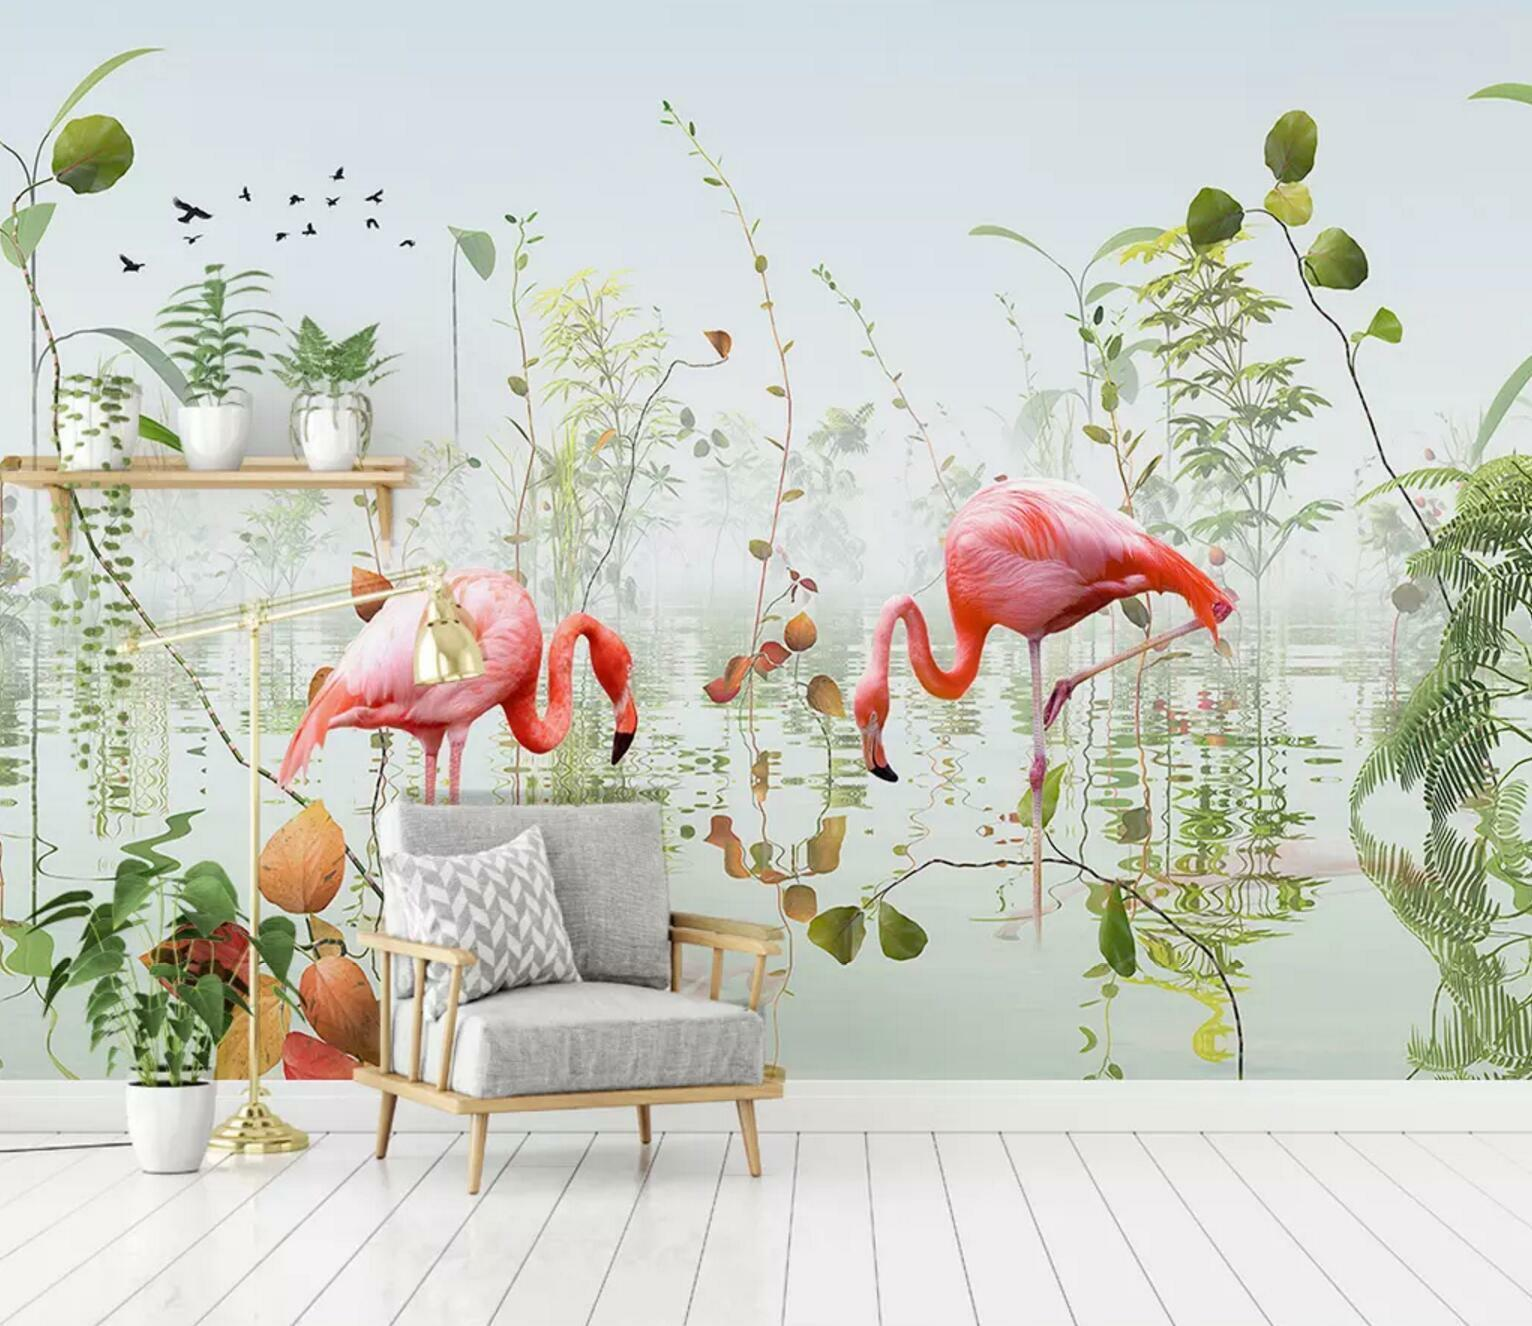 3D Flamingo Leaf 34 Wall Wall Wall Paper Exclusive MXY Wallpaper Mural Decal Indoor wall 446861